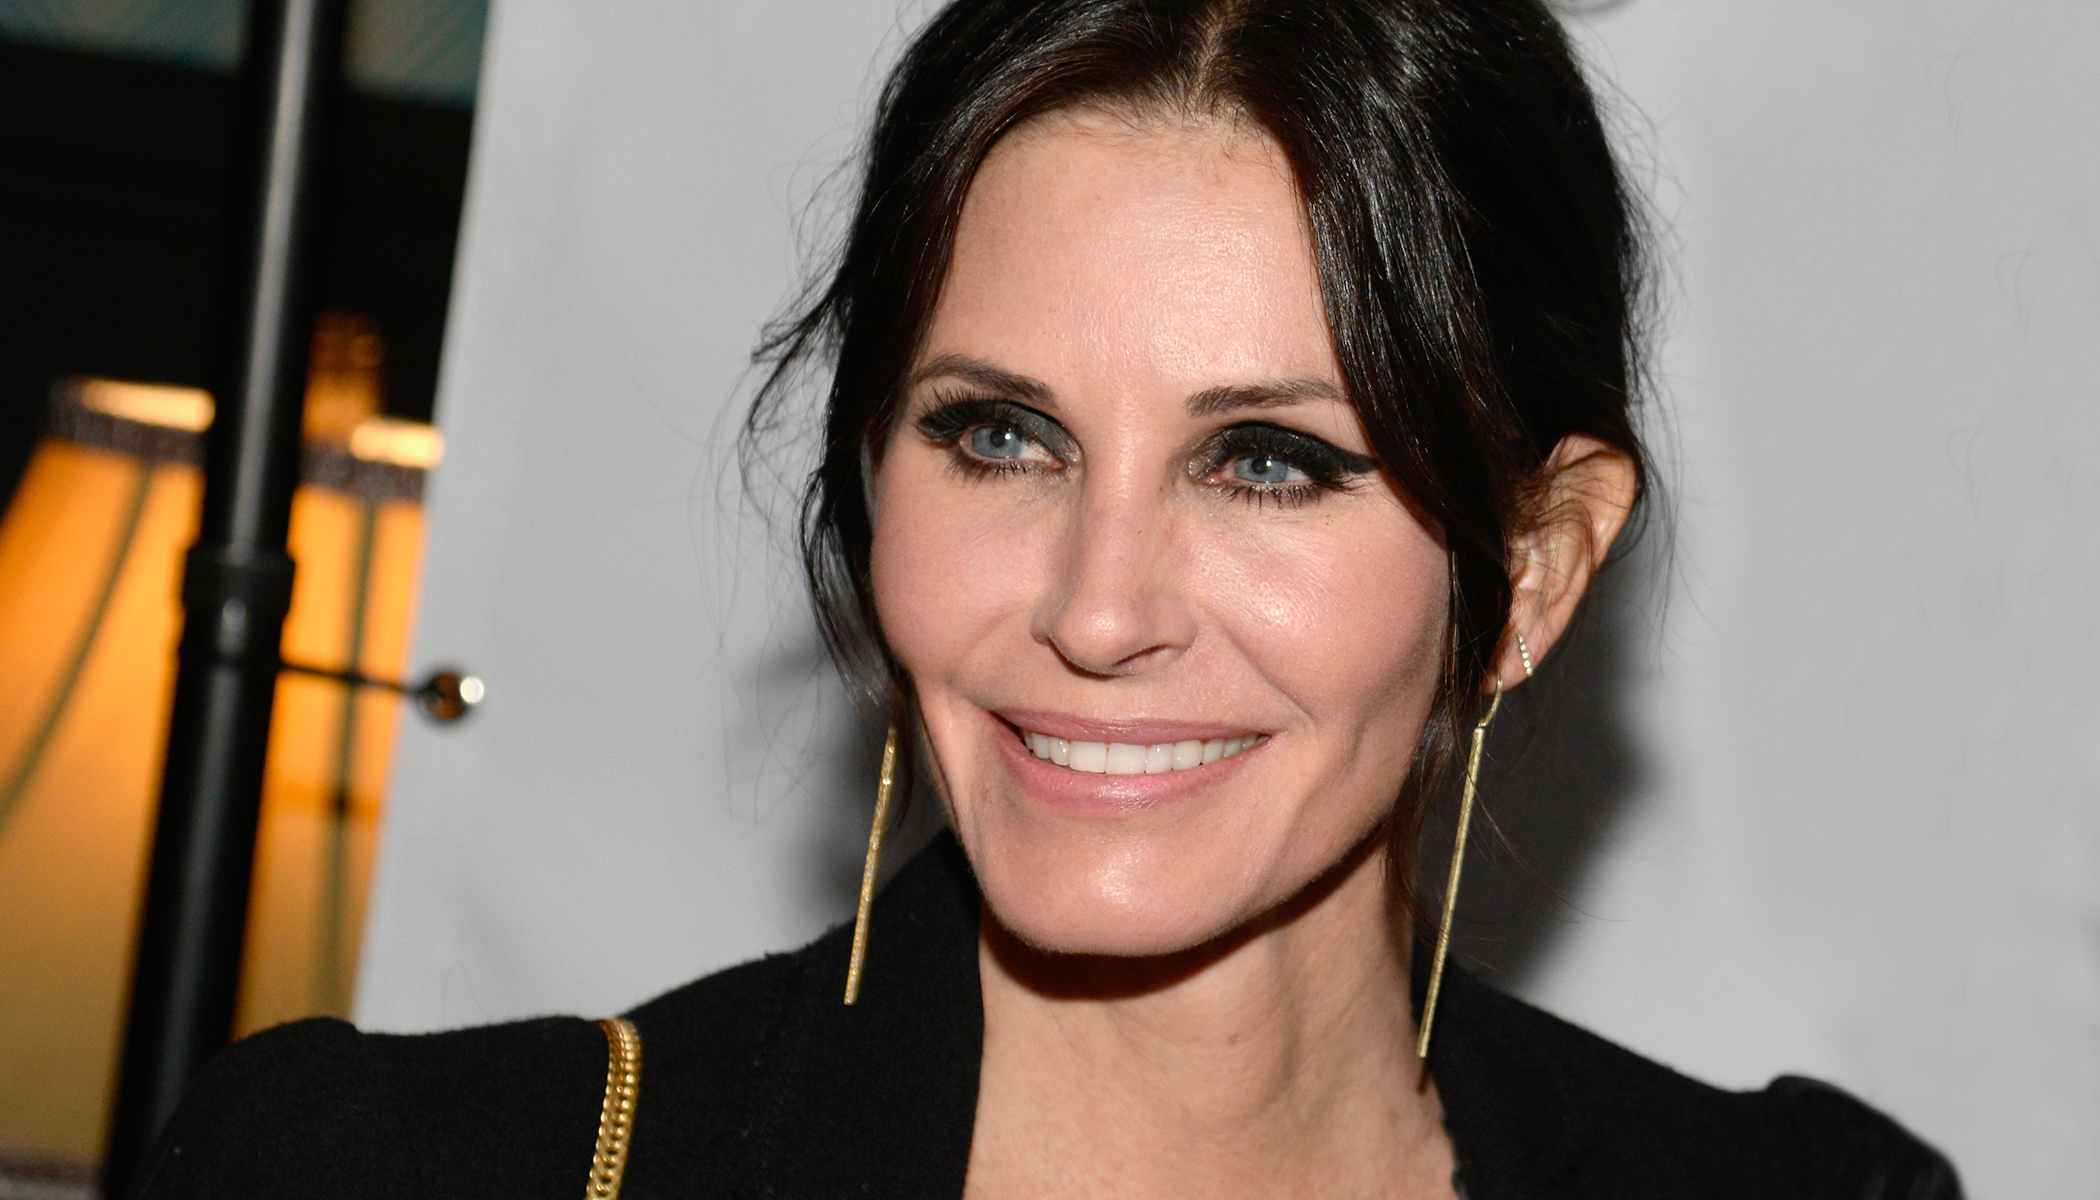 Courteney Cox Goes Natural Without Facial Fillers, and She Looks Just As Beautiful